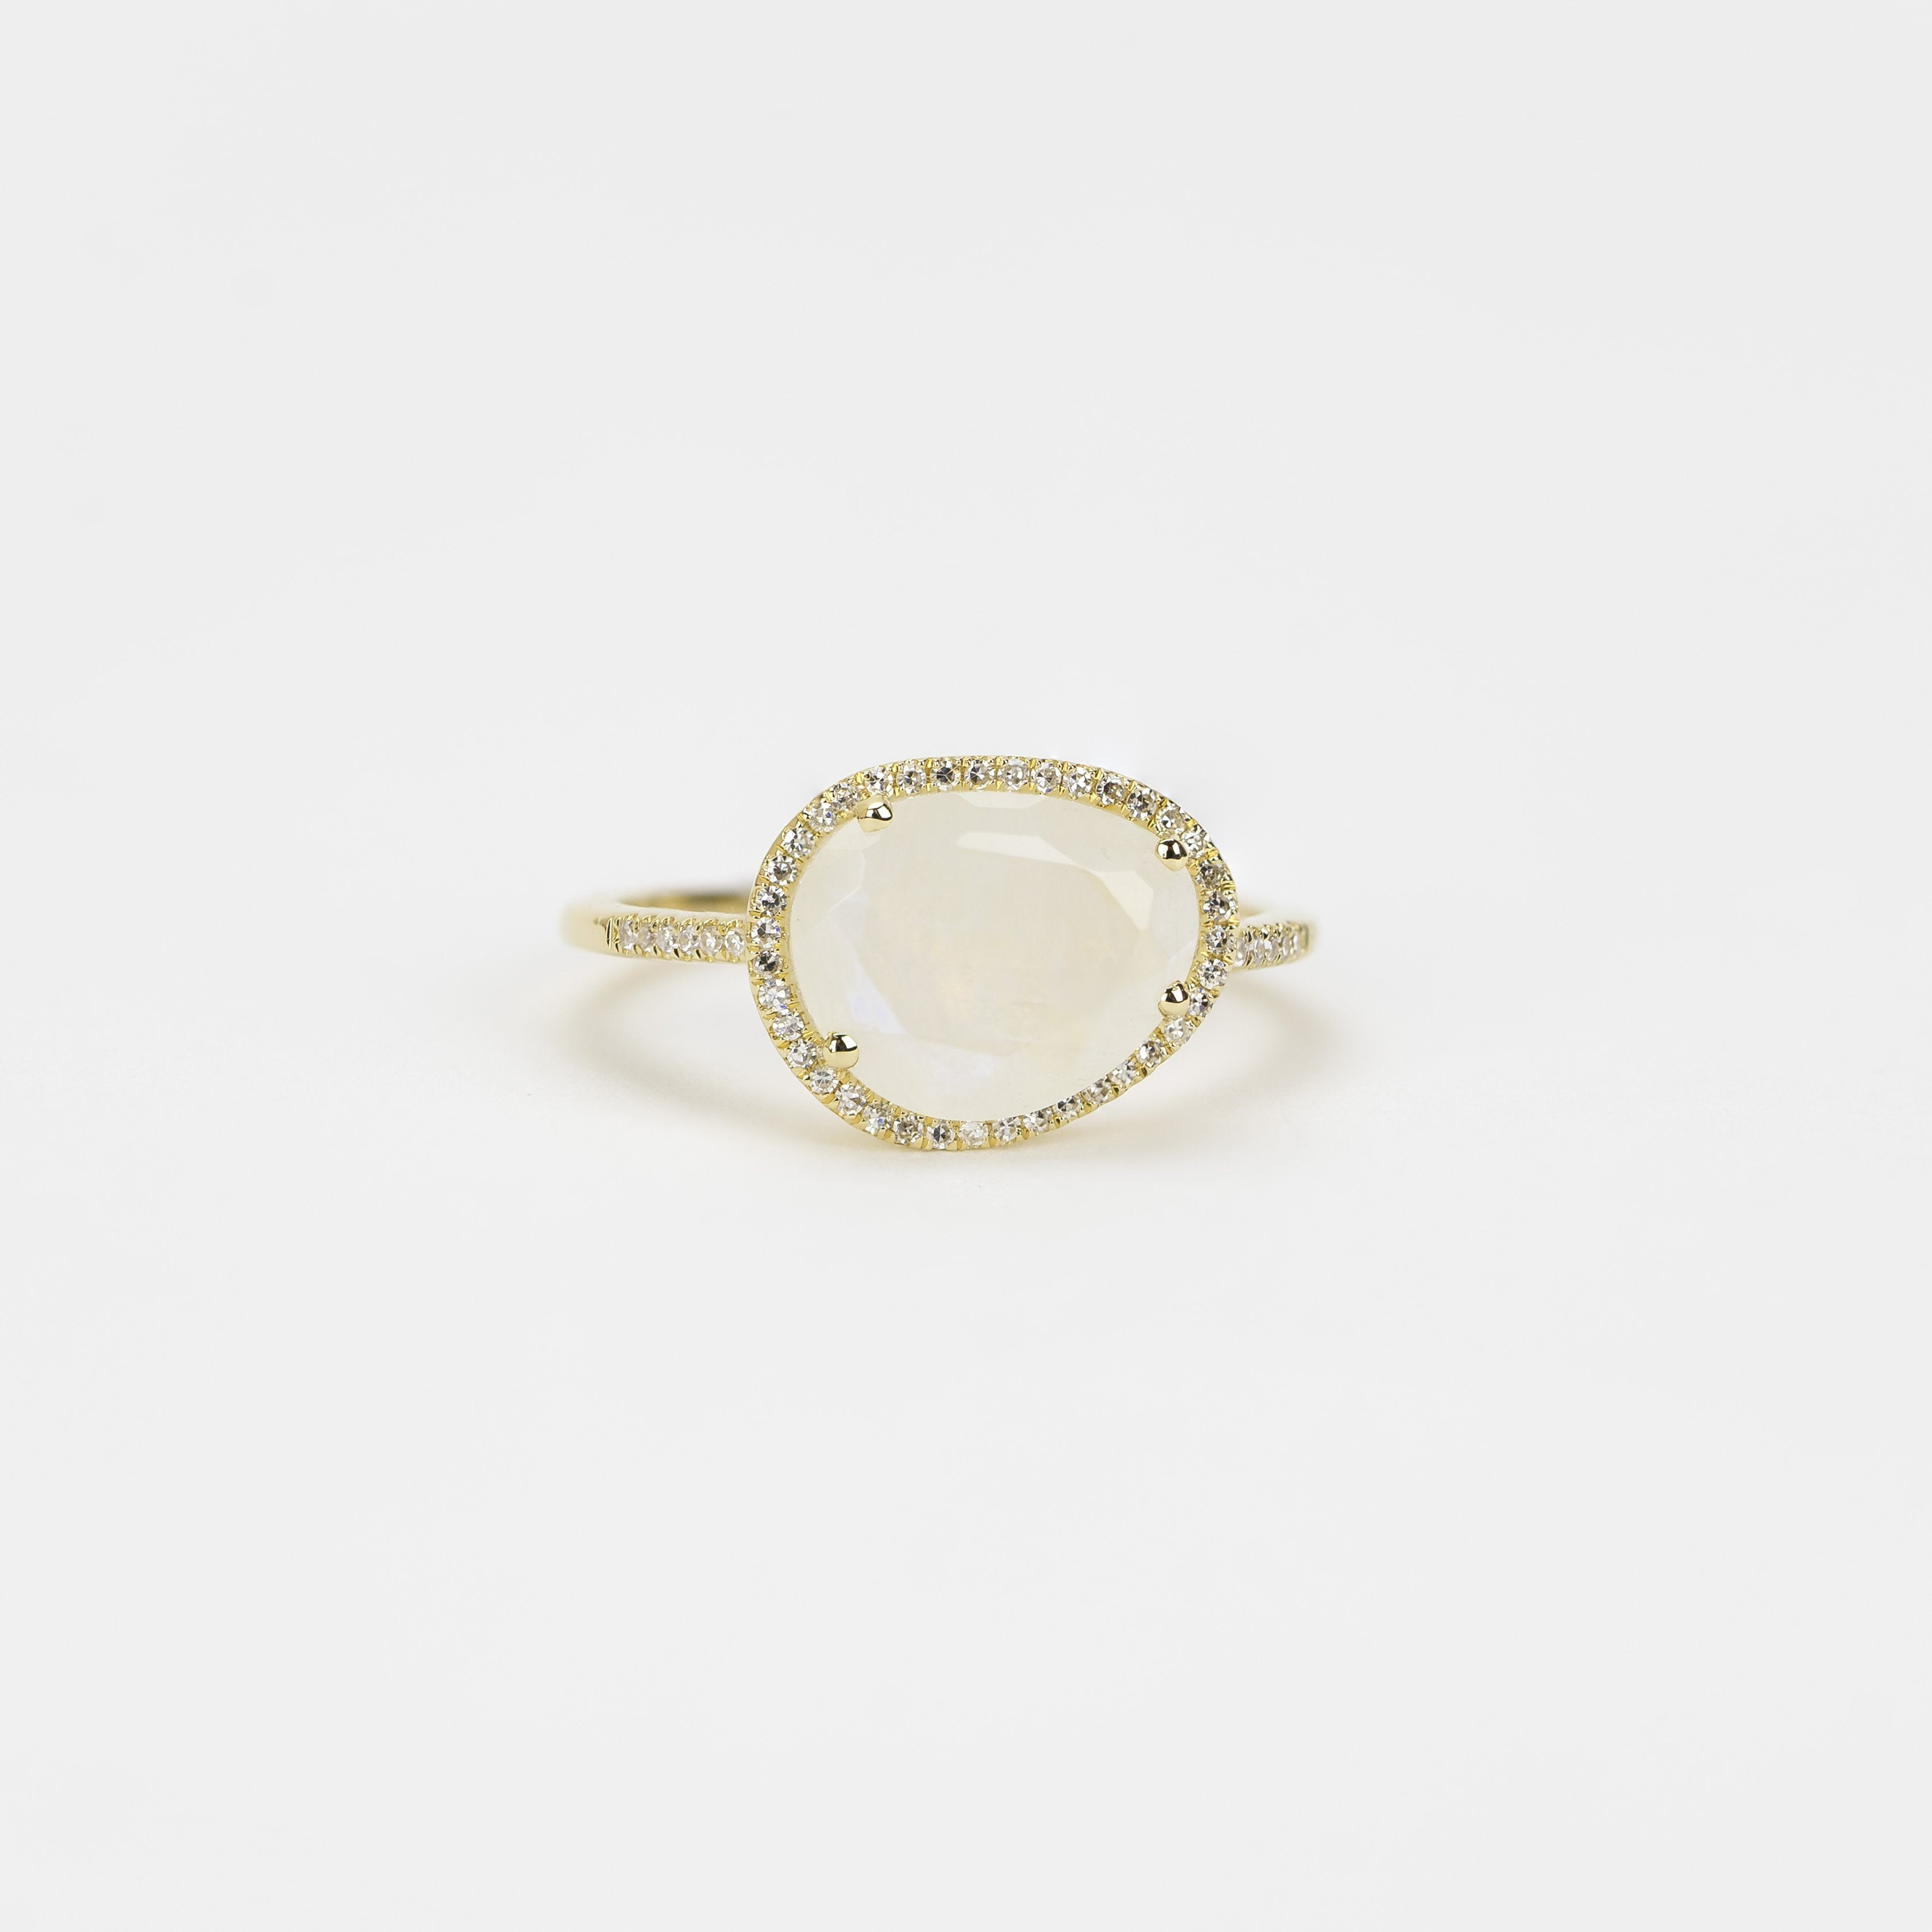 Faceted Moonstone and Diamond Ring by Atheria Jewelry